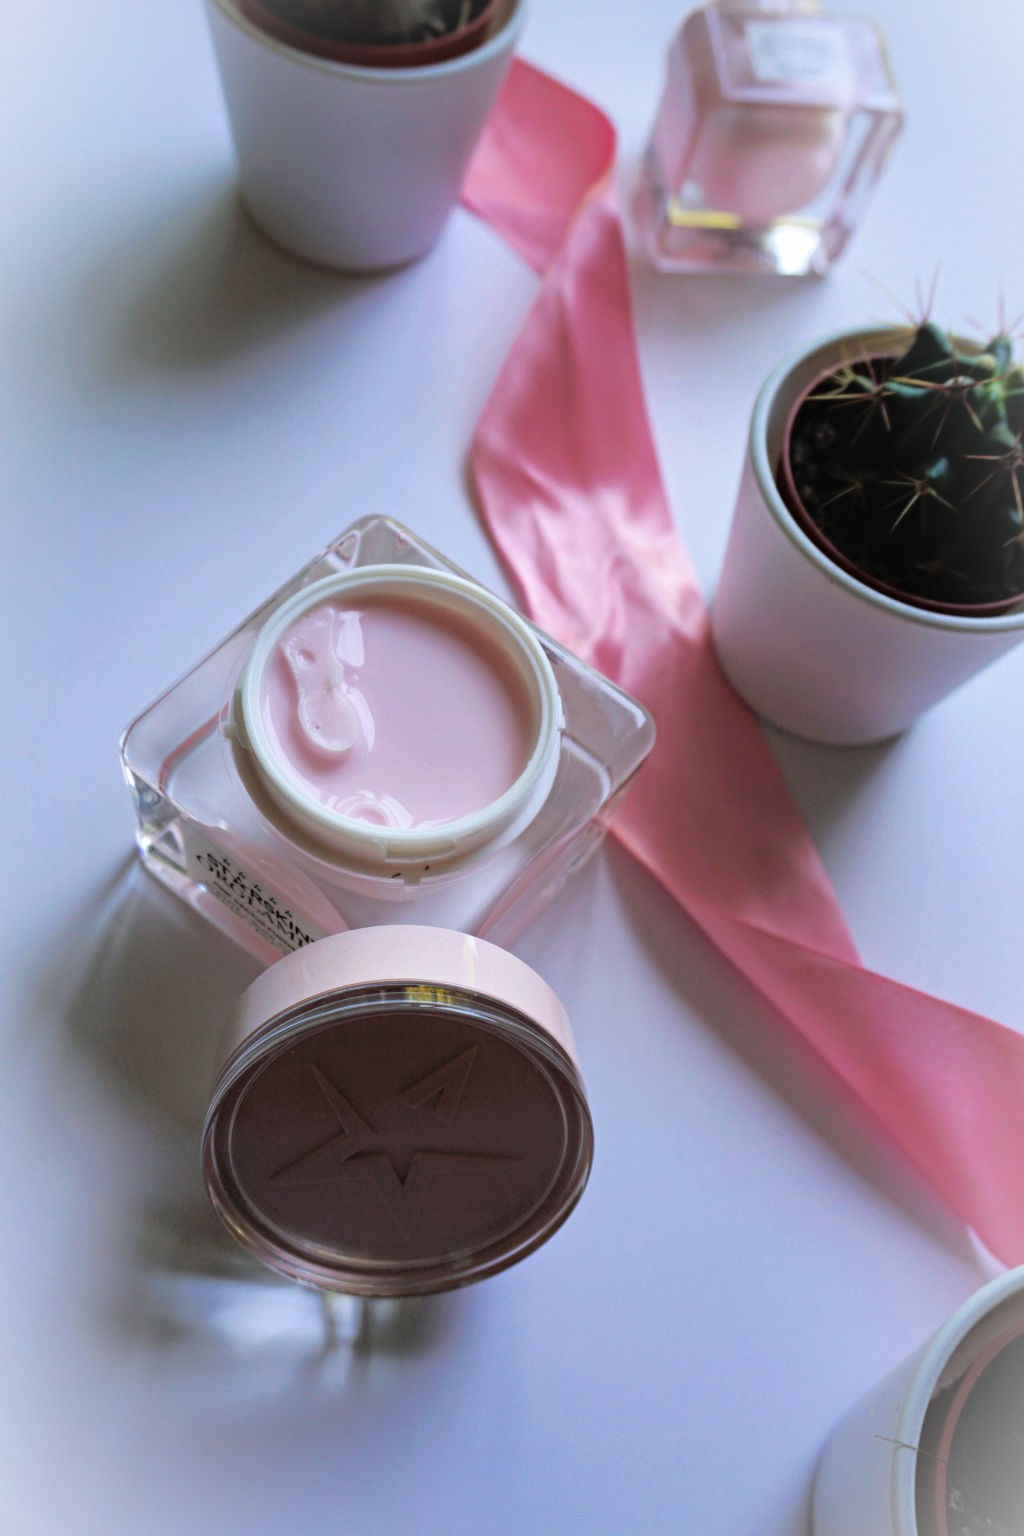 Starskin Orglamic Pink Cactus Pudding Crème Review